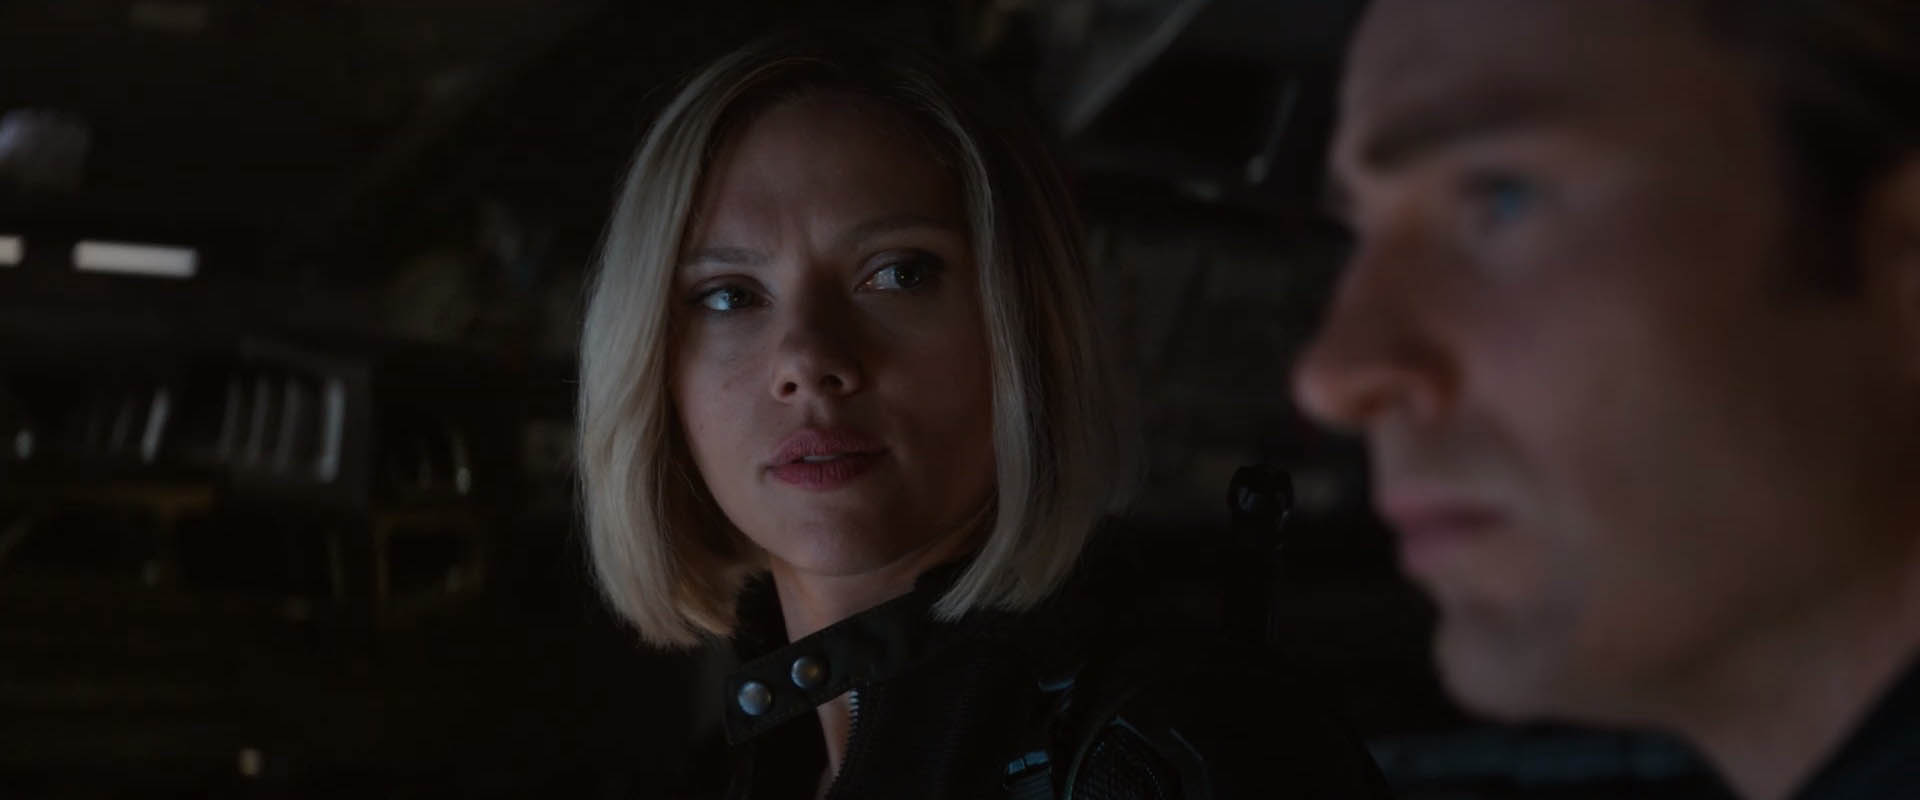 Avengers: Endgame IMAX Trailer Shows Just A Tiny Bit More